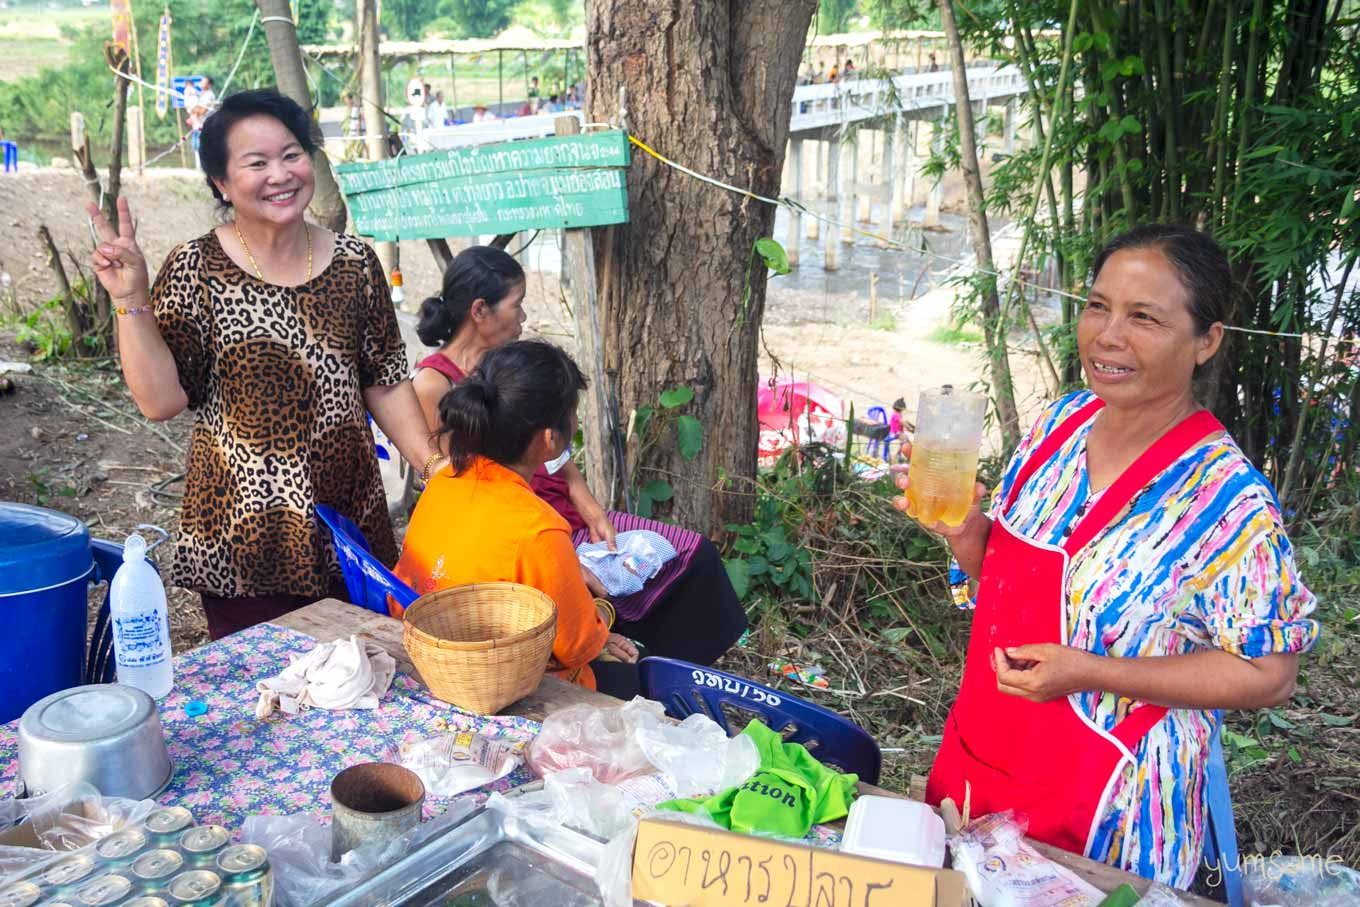 Several Thai women at a trestle table with some cans of drink.